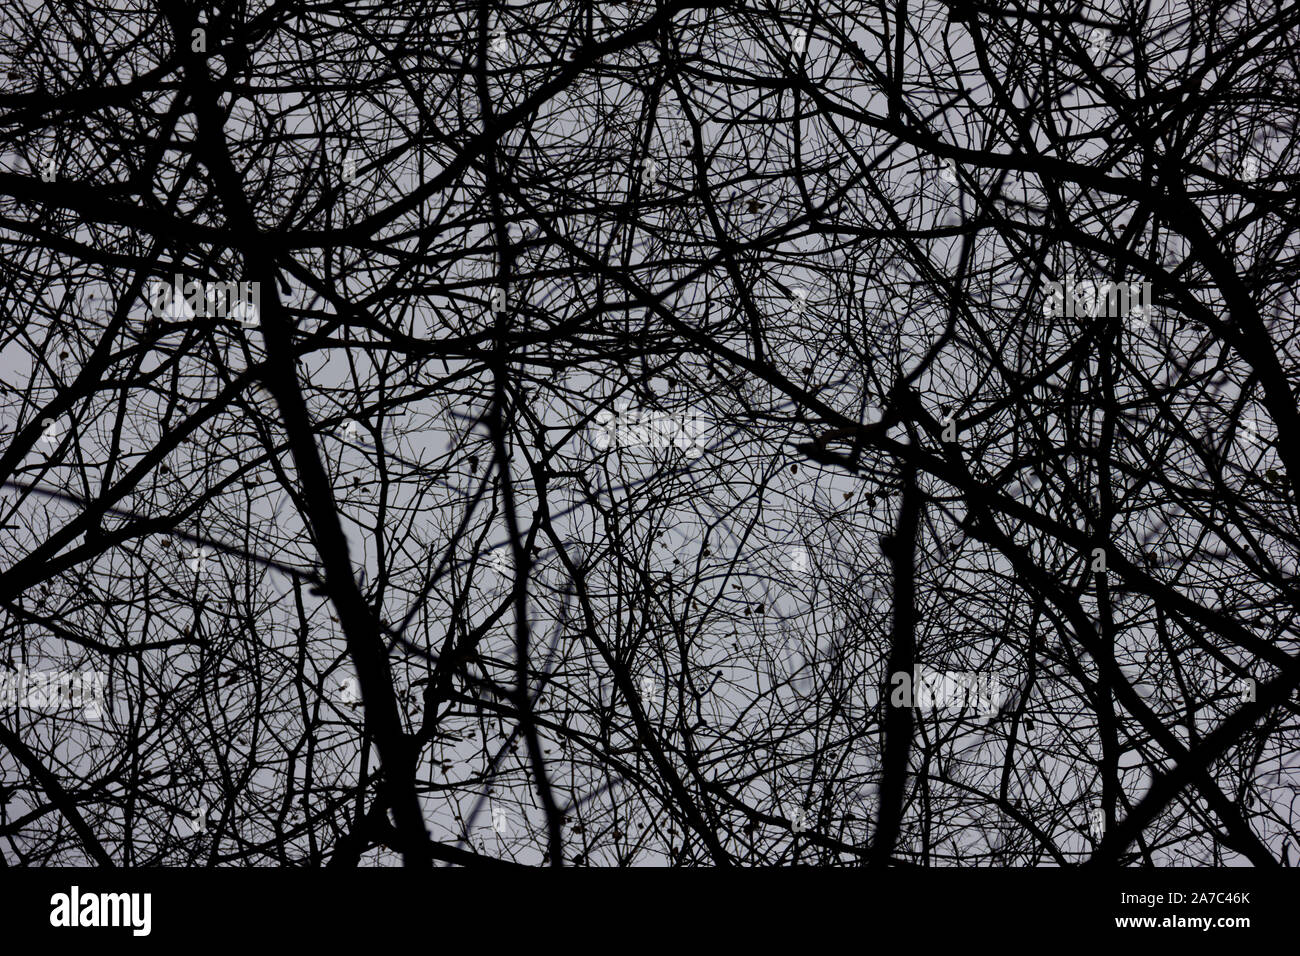 Scary Tree Silhouette High Resolution Stock Photography And Images Alamy